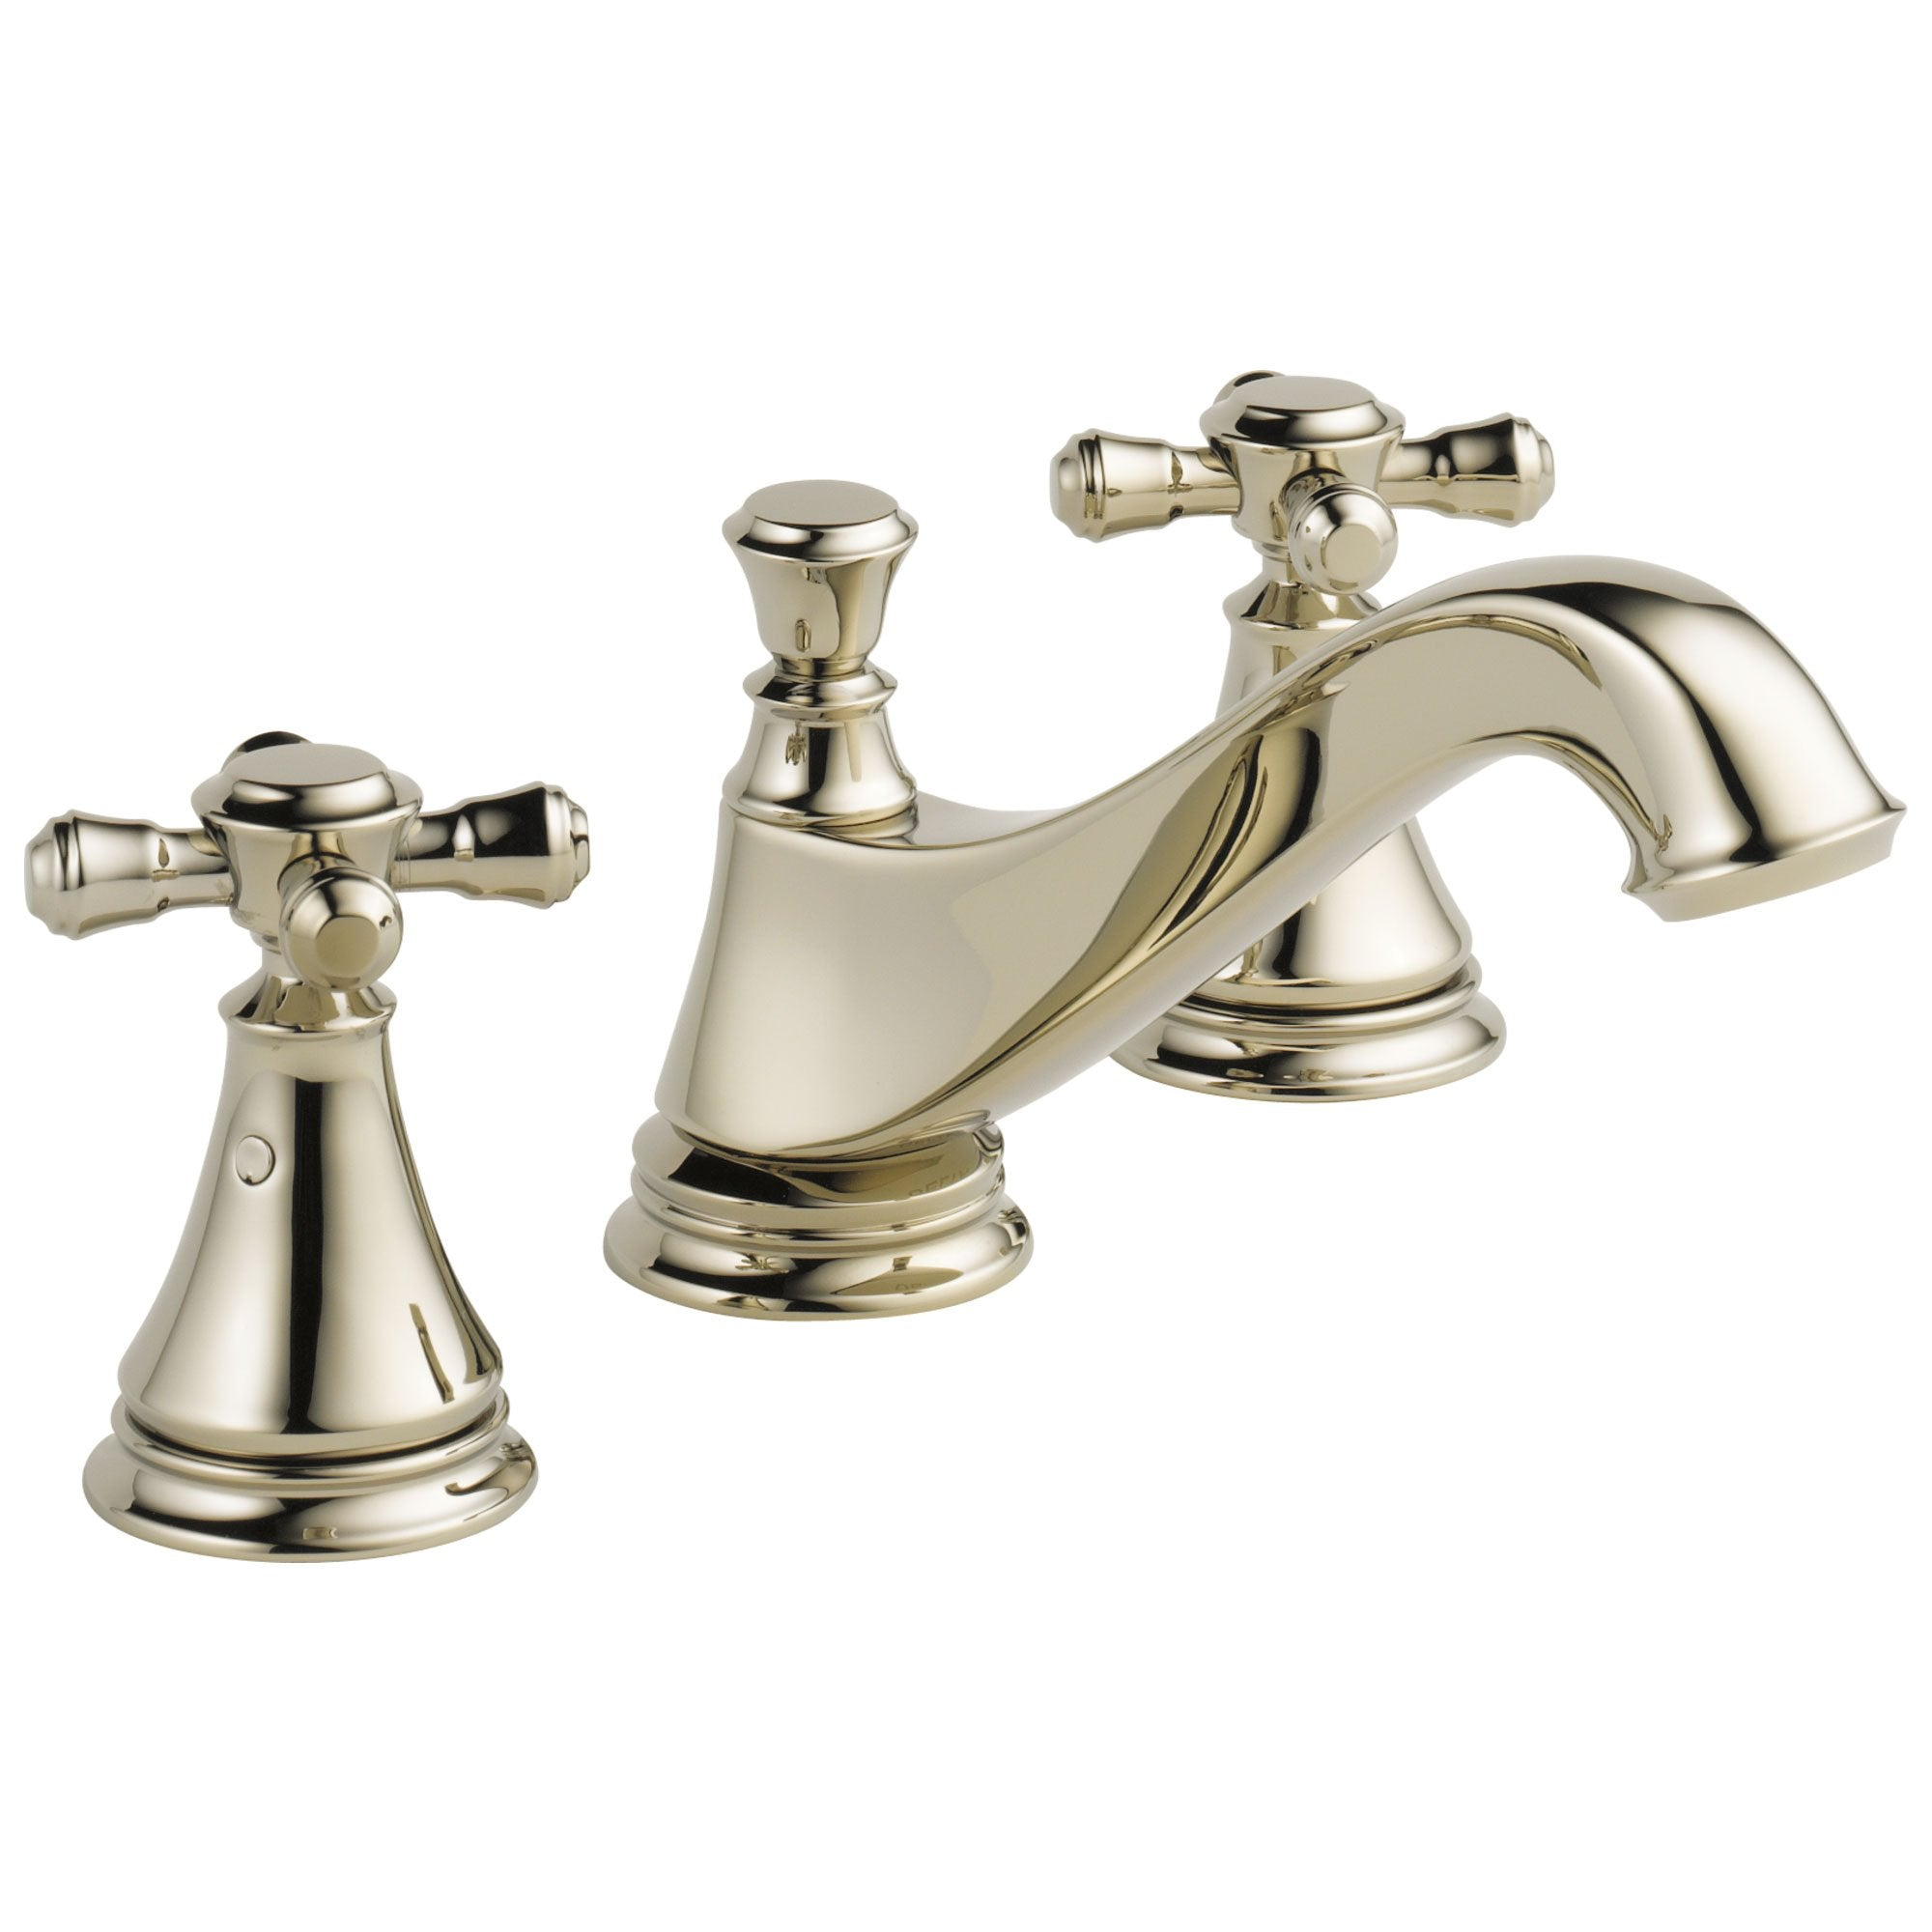 Delta Cassidy Collection Polished Nickel Traditional Low Spout Widespread Bathroom Sink Faucet INCLUDES Two Cross Handles and Drain D1795V